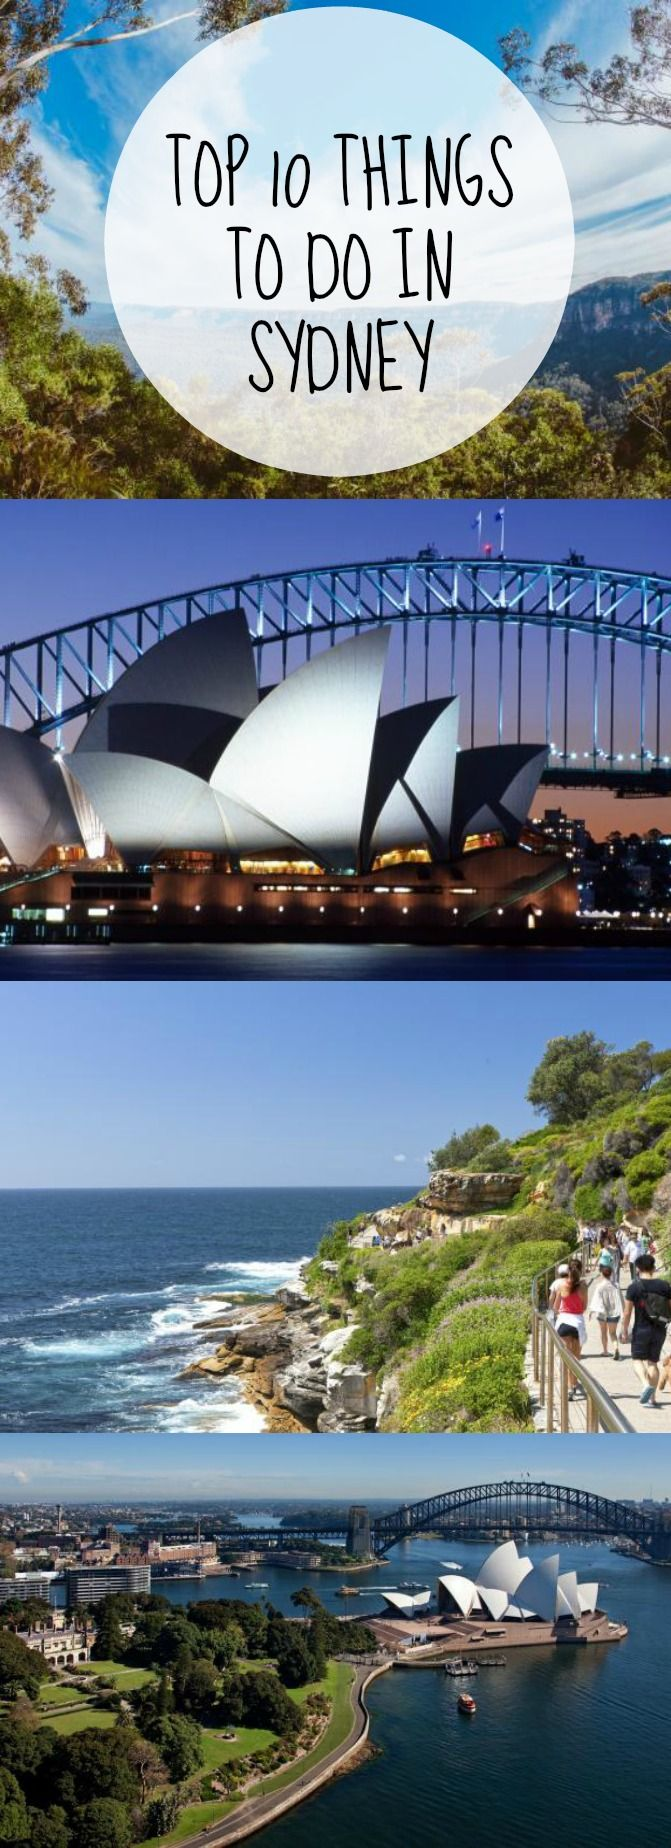 Top Things To Do In Sydney Pinuplive PinUp Live - 10 things to see and do in sydney australia